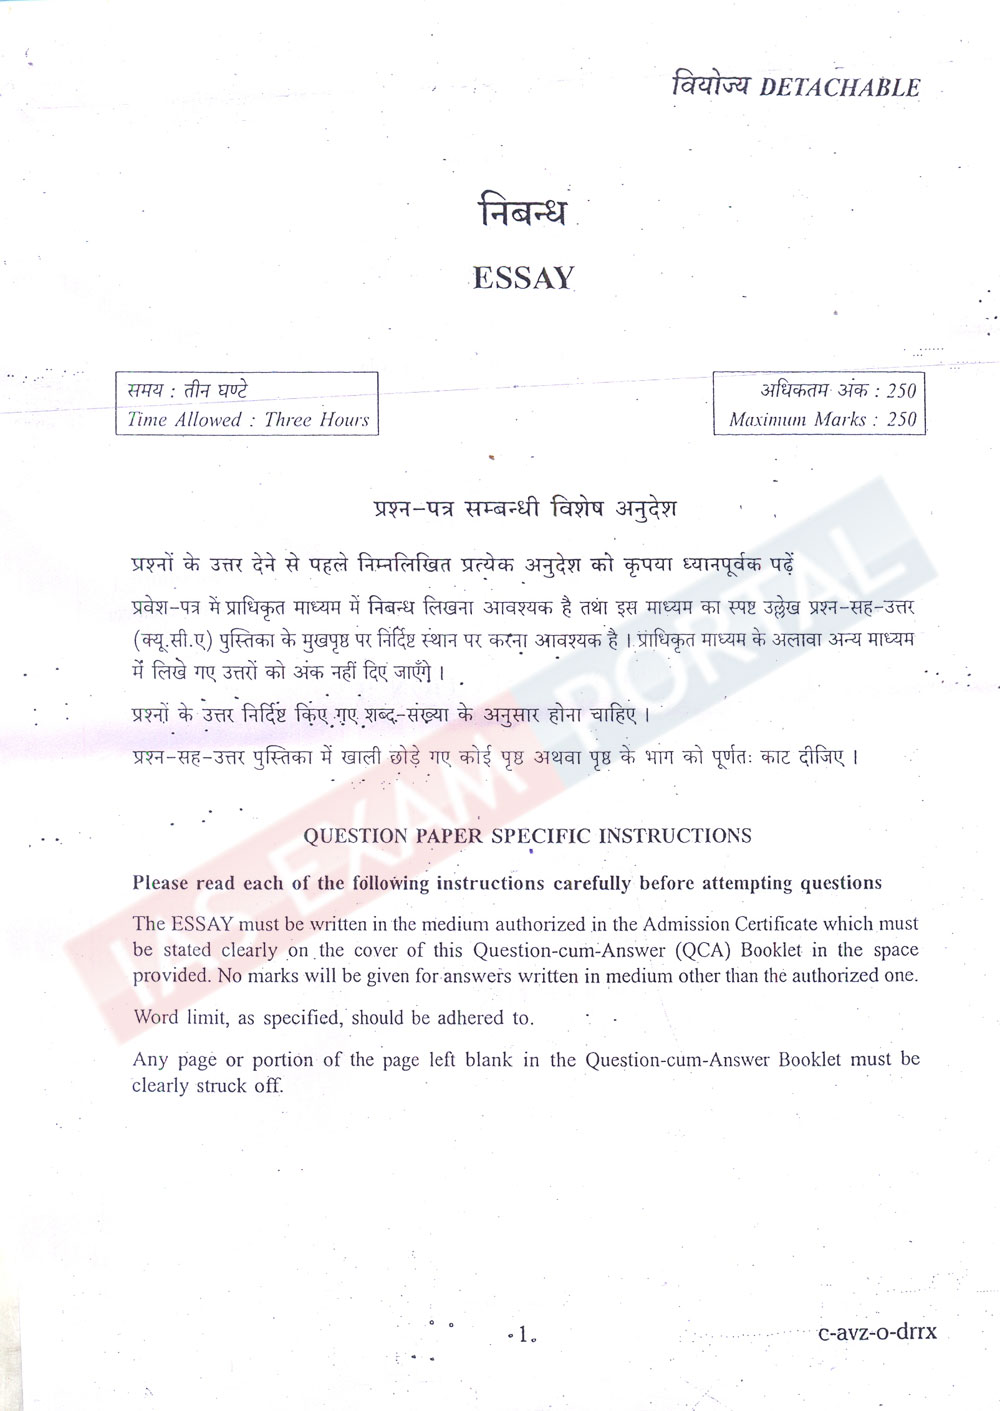 Examples Of English Essays  Purpose Of Thesis Statement In An Essay also Essay On High School Experience Download Upsc Ias Mains  Essay Compulsory Question  Compare And Contrast Essay Topics For High School Students